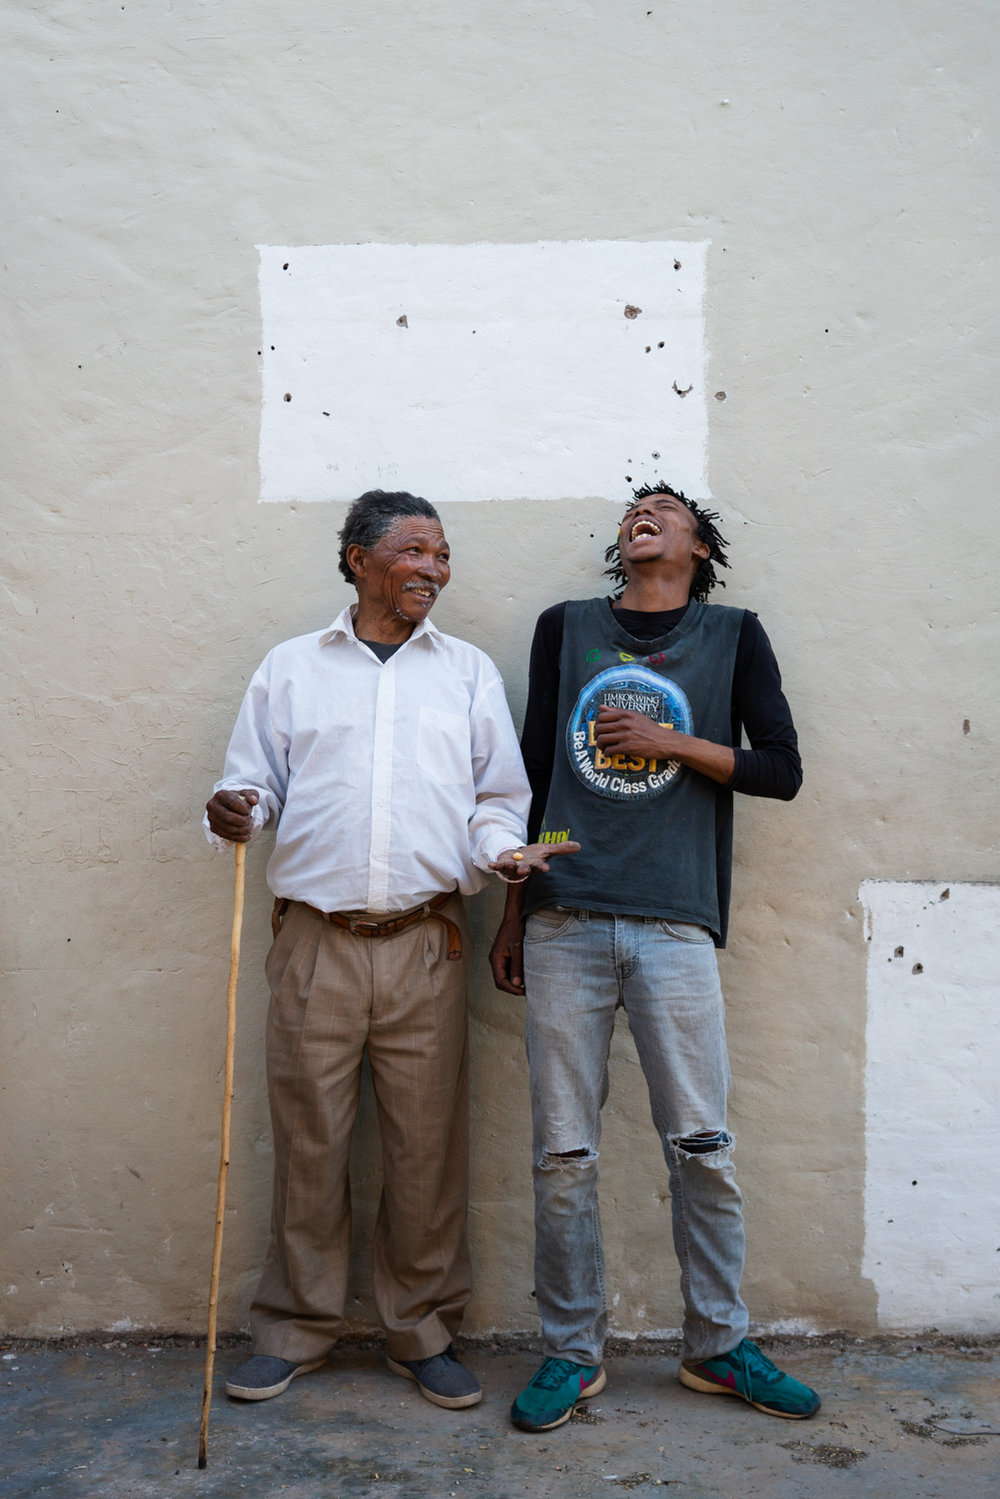 Alphynho with his grandfather Xgaiga inside of an abandoned house he recently acquired. Xgaiga intends to fix the house and property with Alphynho and turn it into a lodge.